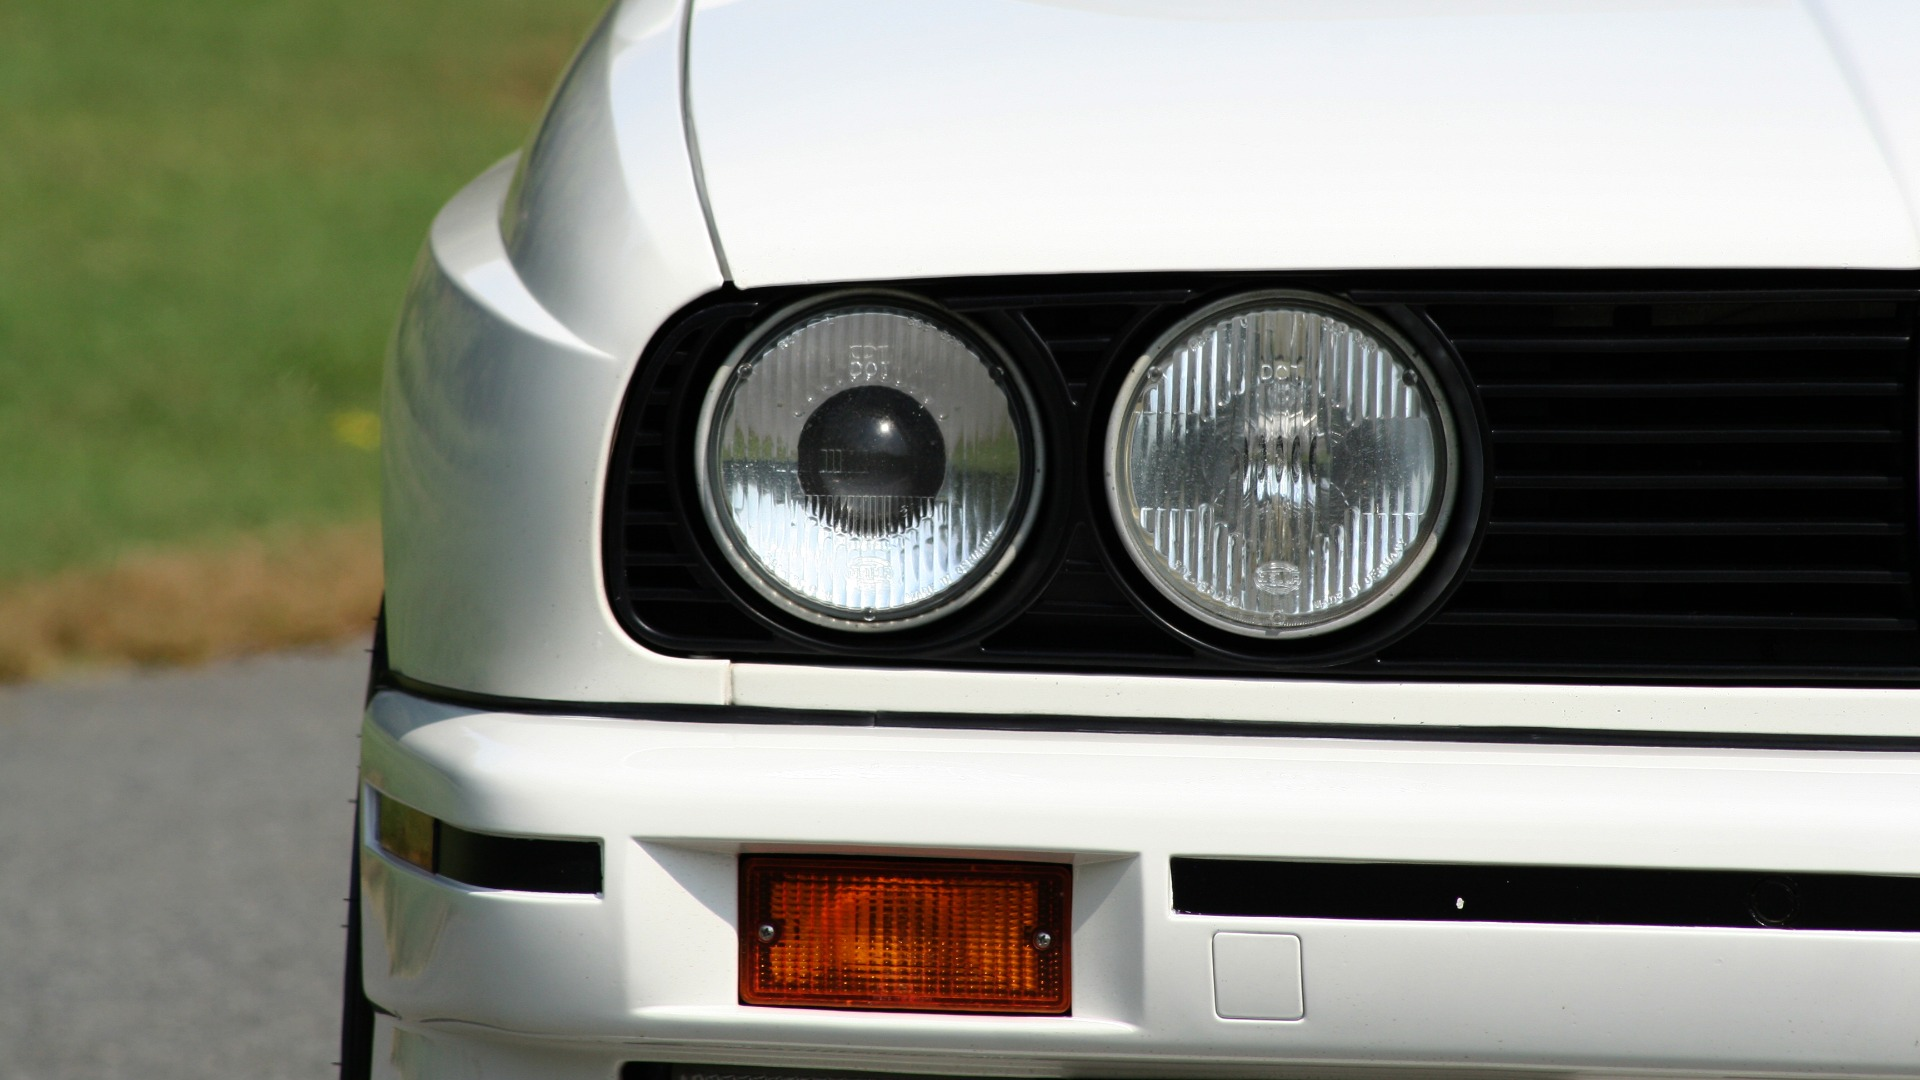 Used 1989 BMW M3 COUPE 2DR / 5-SPEED MAN / LOW MILES / SUPER CLEAN for sale Sold at Formula Imports in Charlotte NC 28227 15